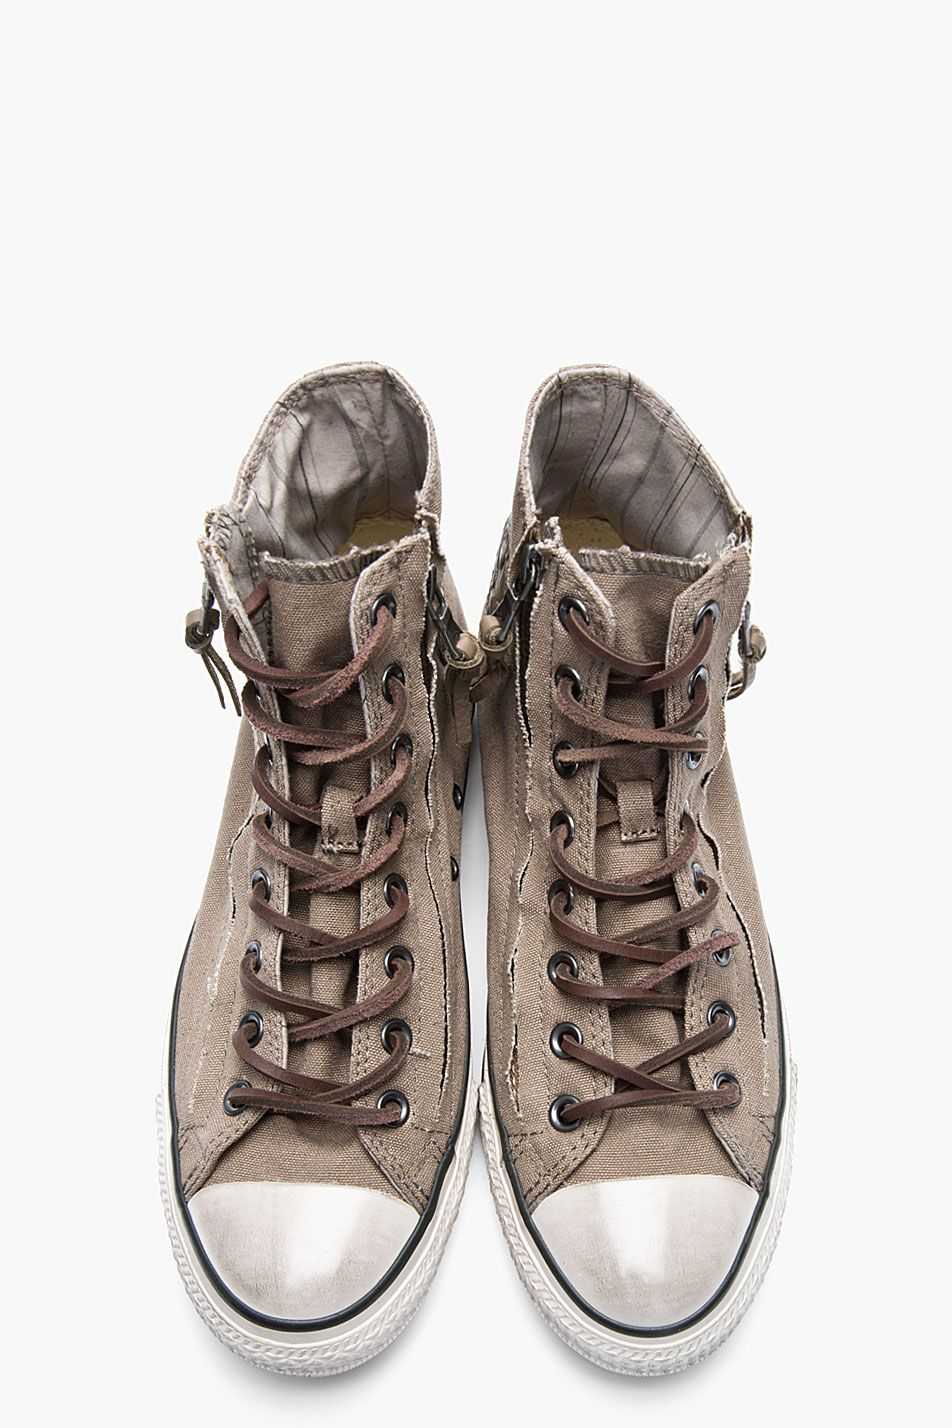 d1b4efce5d8f CONVERSE BY JOHN VARVATOS Dusty brown Chuck Taylor All Star Double Zip Duck  Canvas Hi-tops